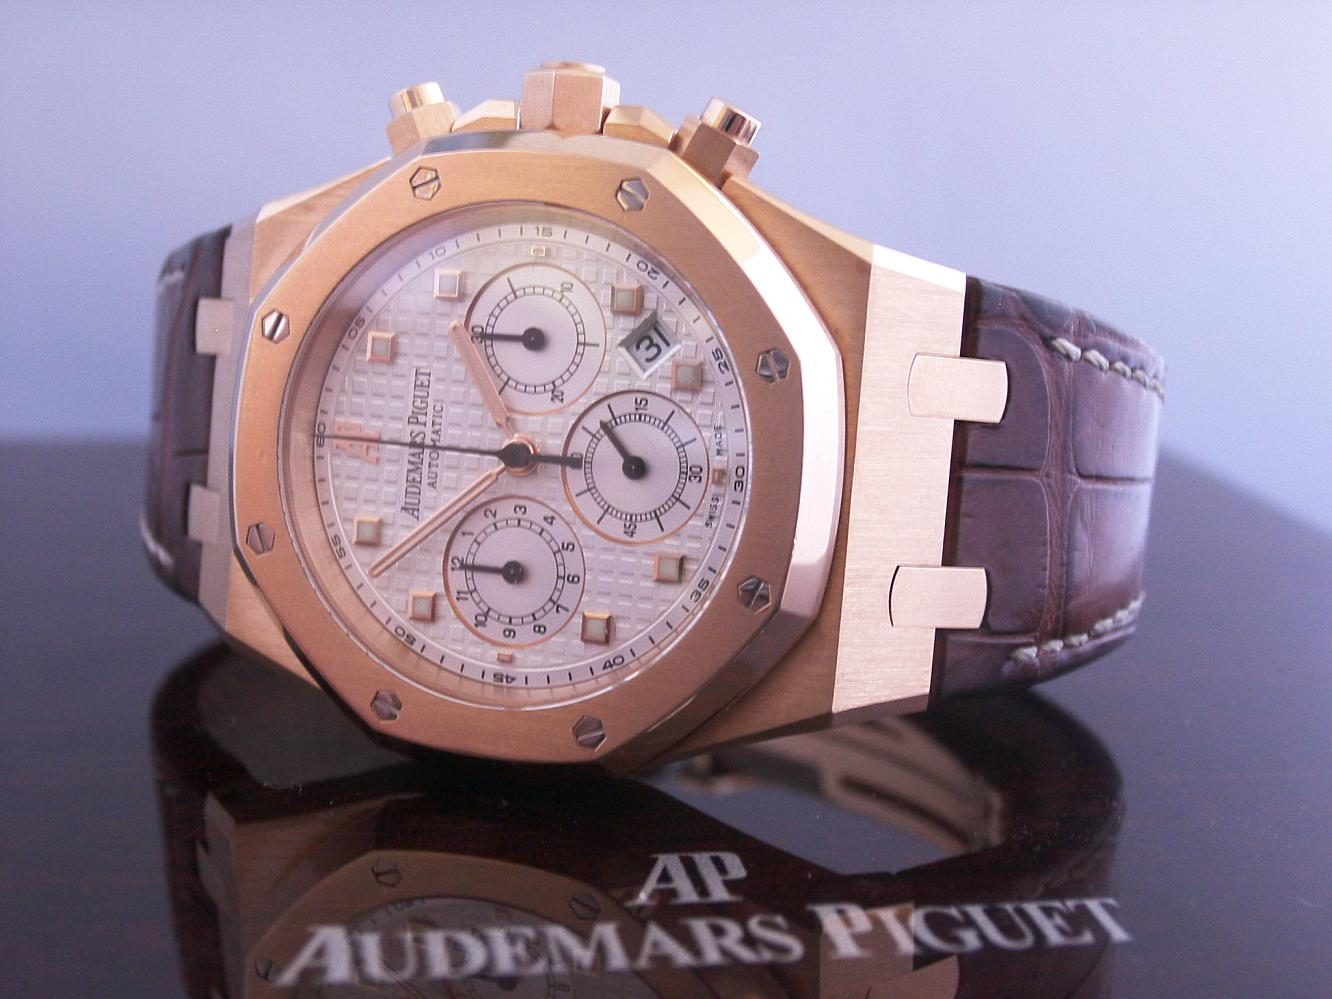 Audemars Piquet Royal Oak Chronograph in Rose gold***SOLD***